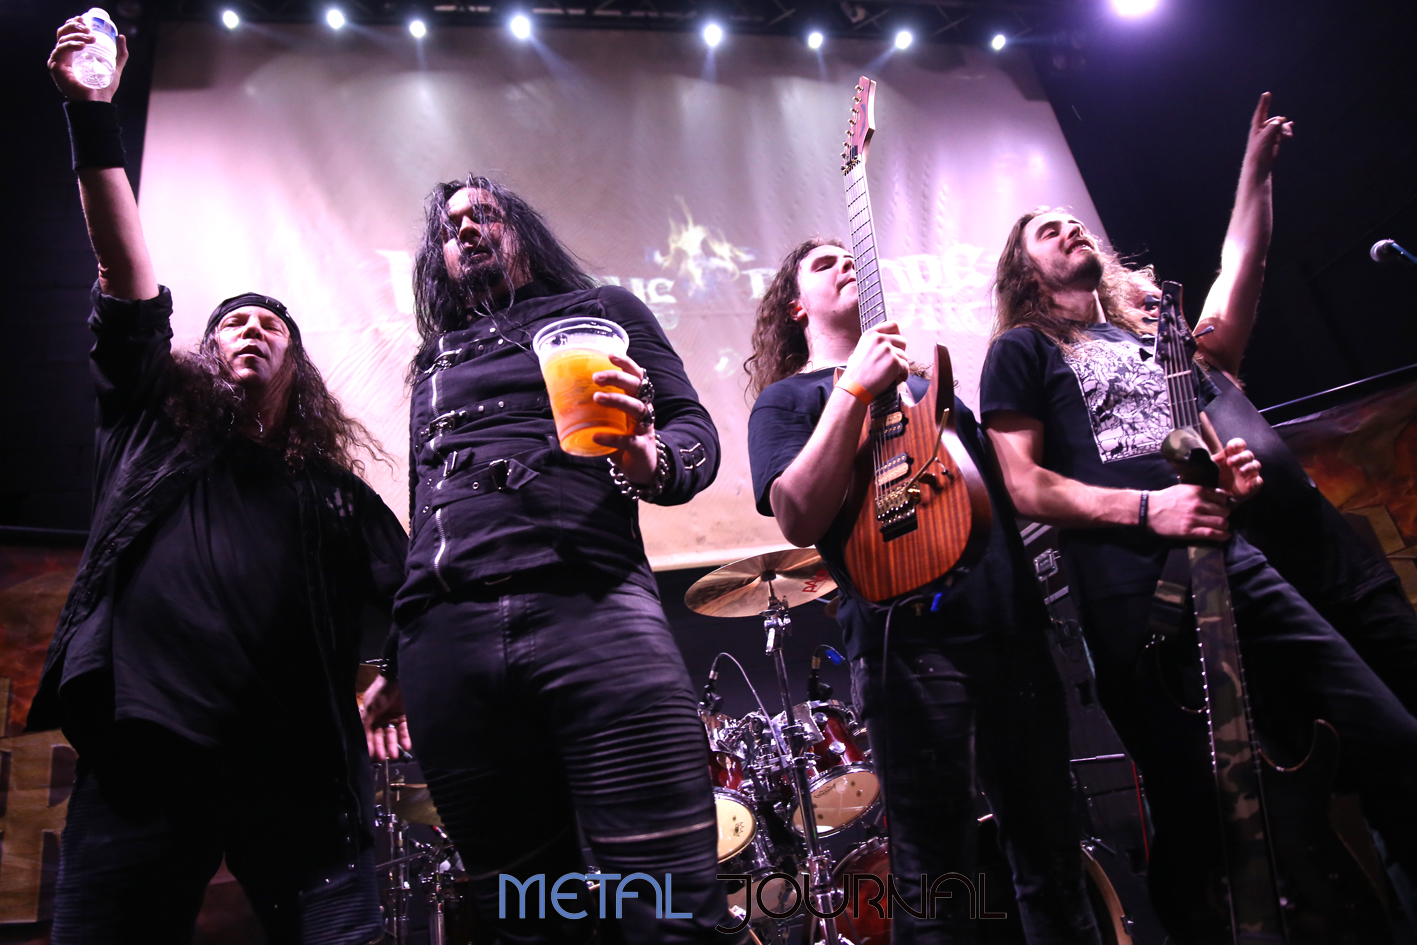 vicious rumors - metal journal irun pic 7